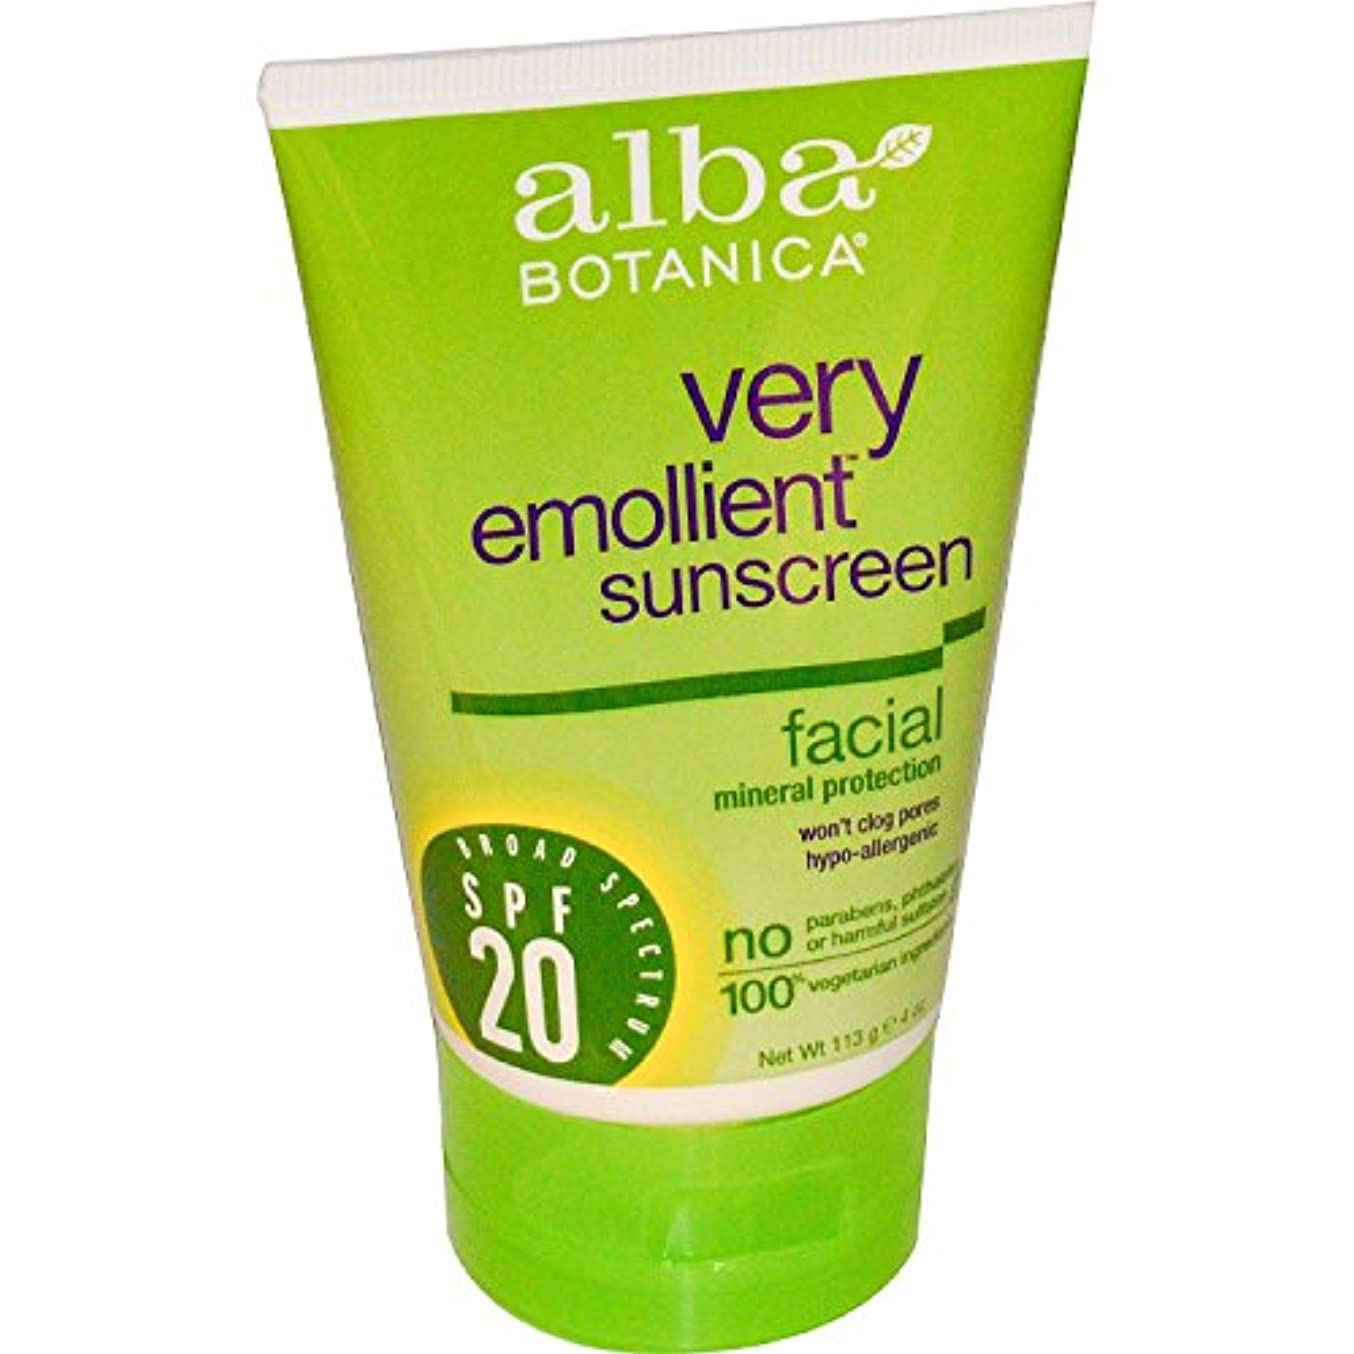 Natural Sunblock - Very Emollient - Mineral SPF 20 - Facial - 4 oz by Alba Botanica